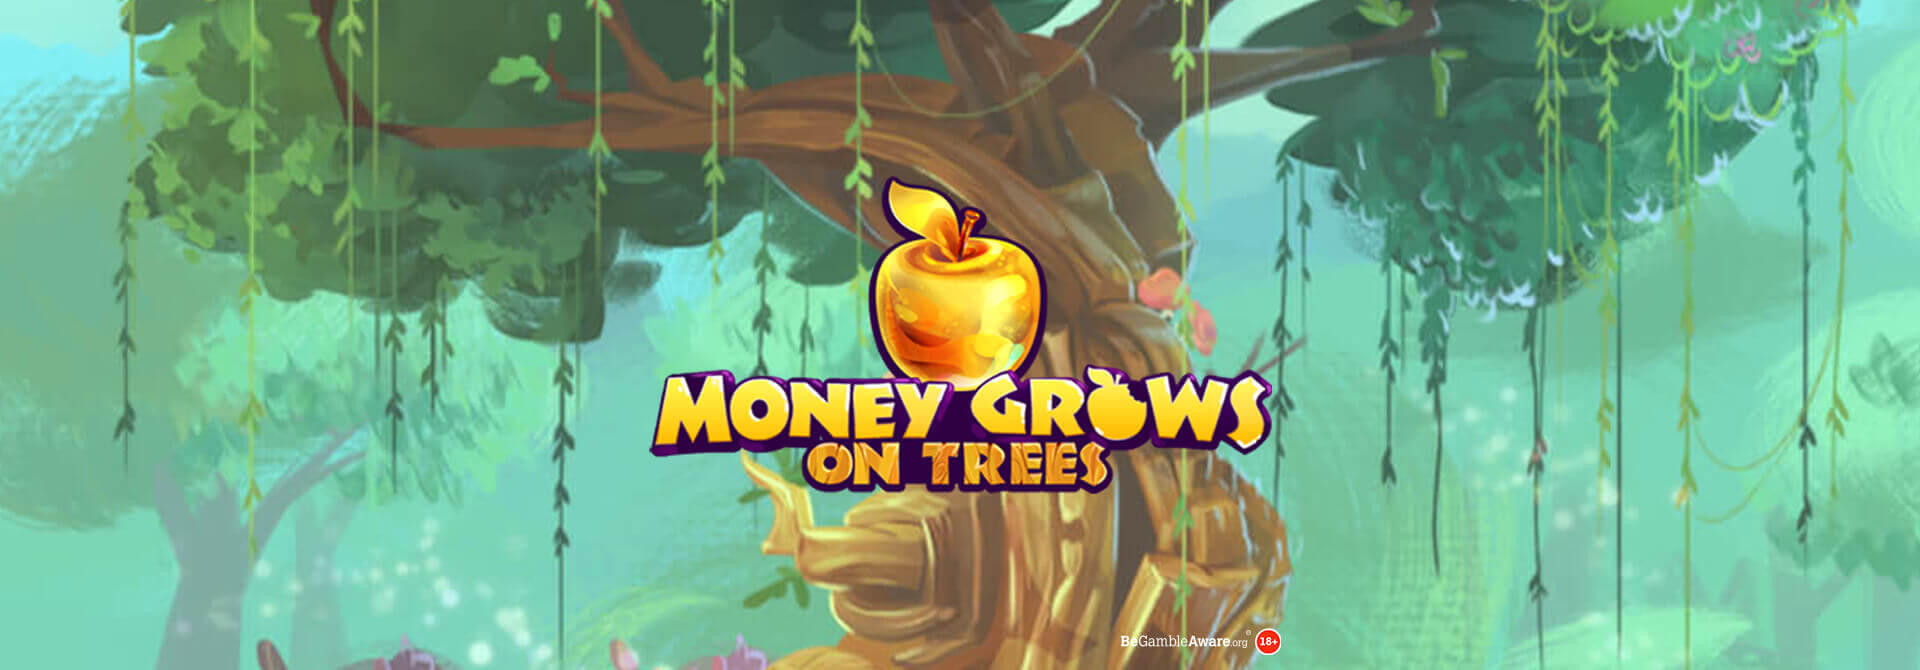 NEW GAME ALERT: Money Grows on Trees